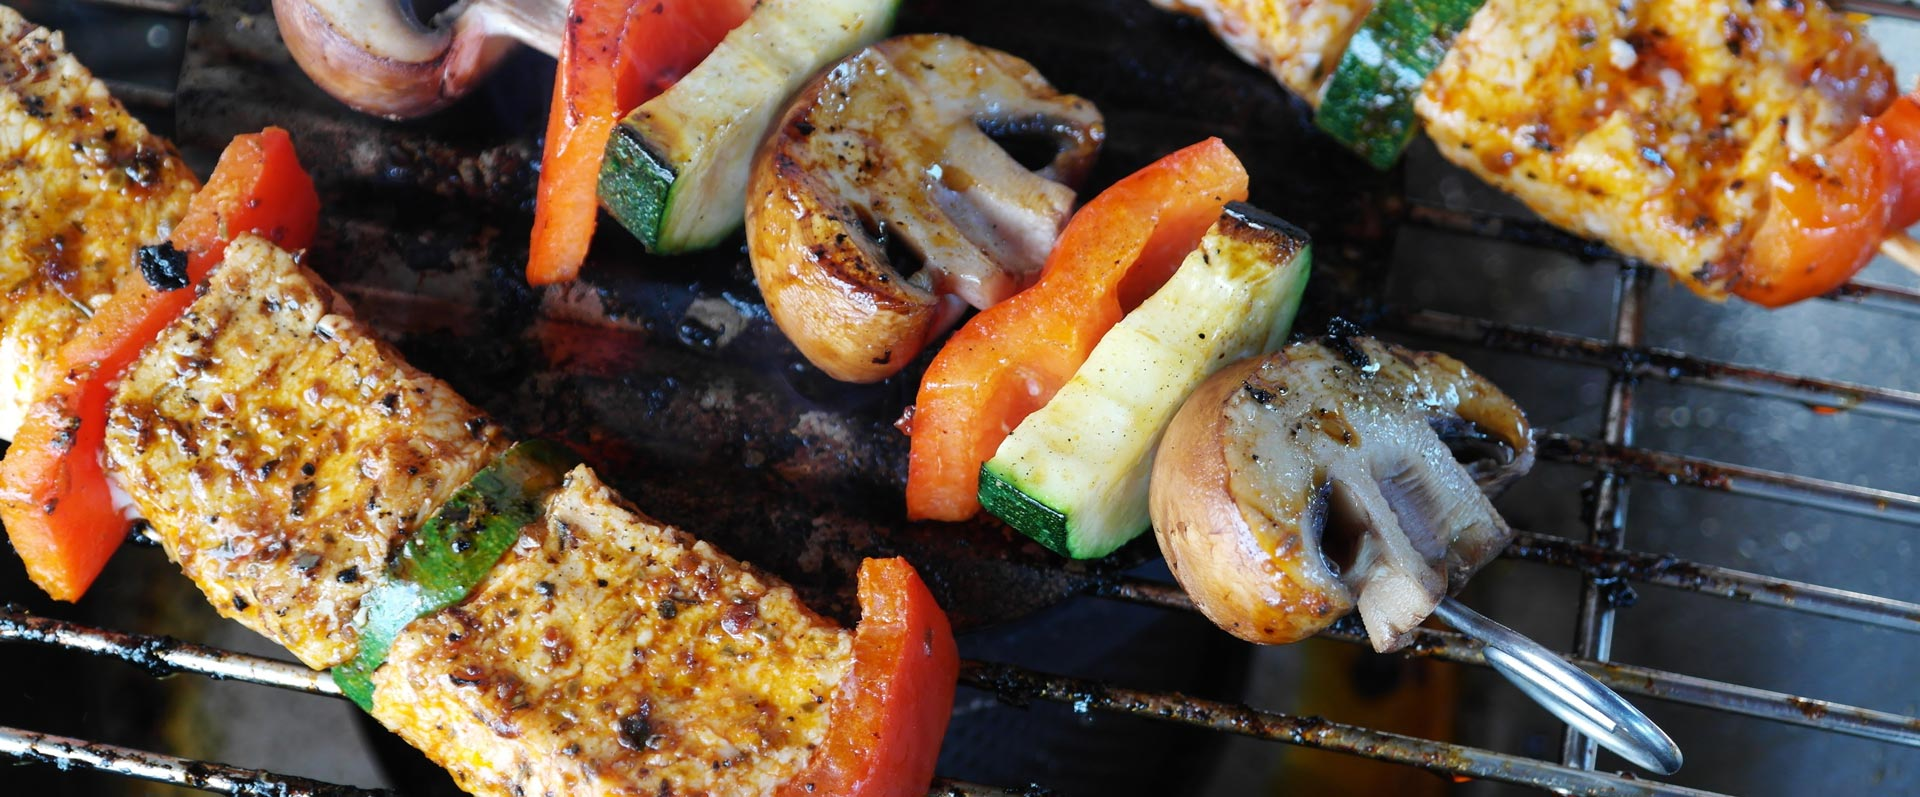 Top-Five-Wedding-Reception-Meals-Vegetable-Kebabs